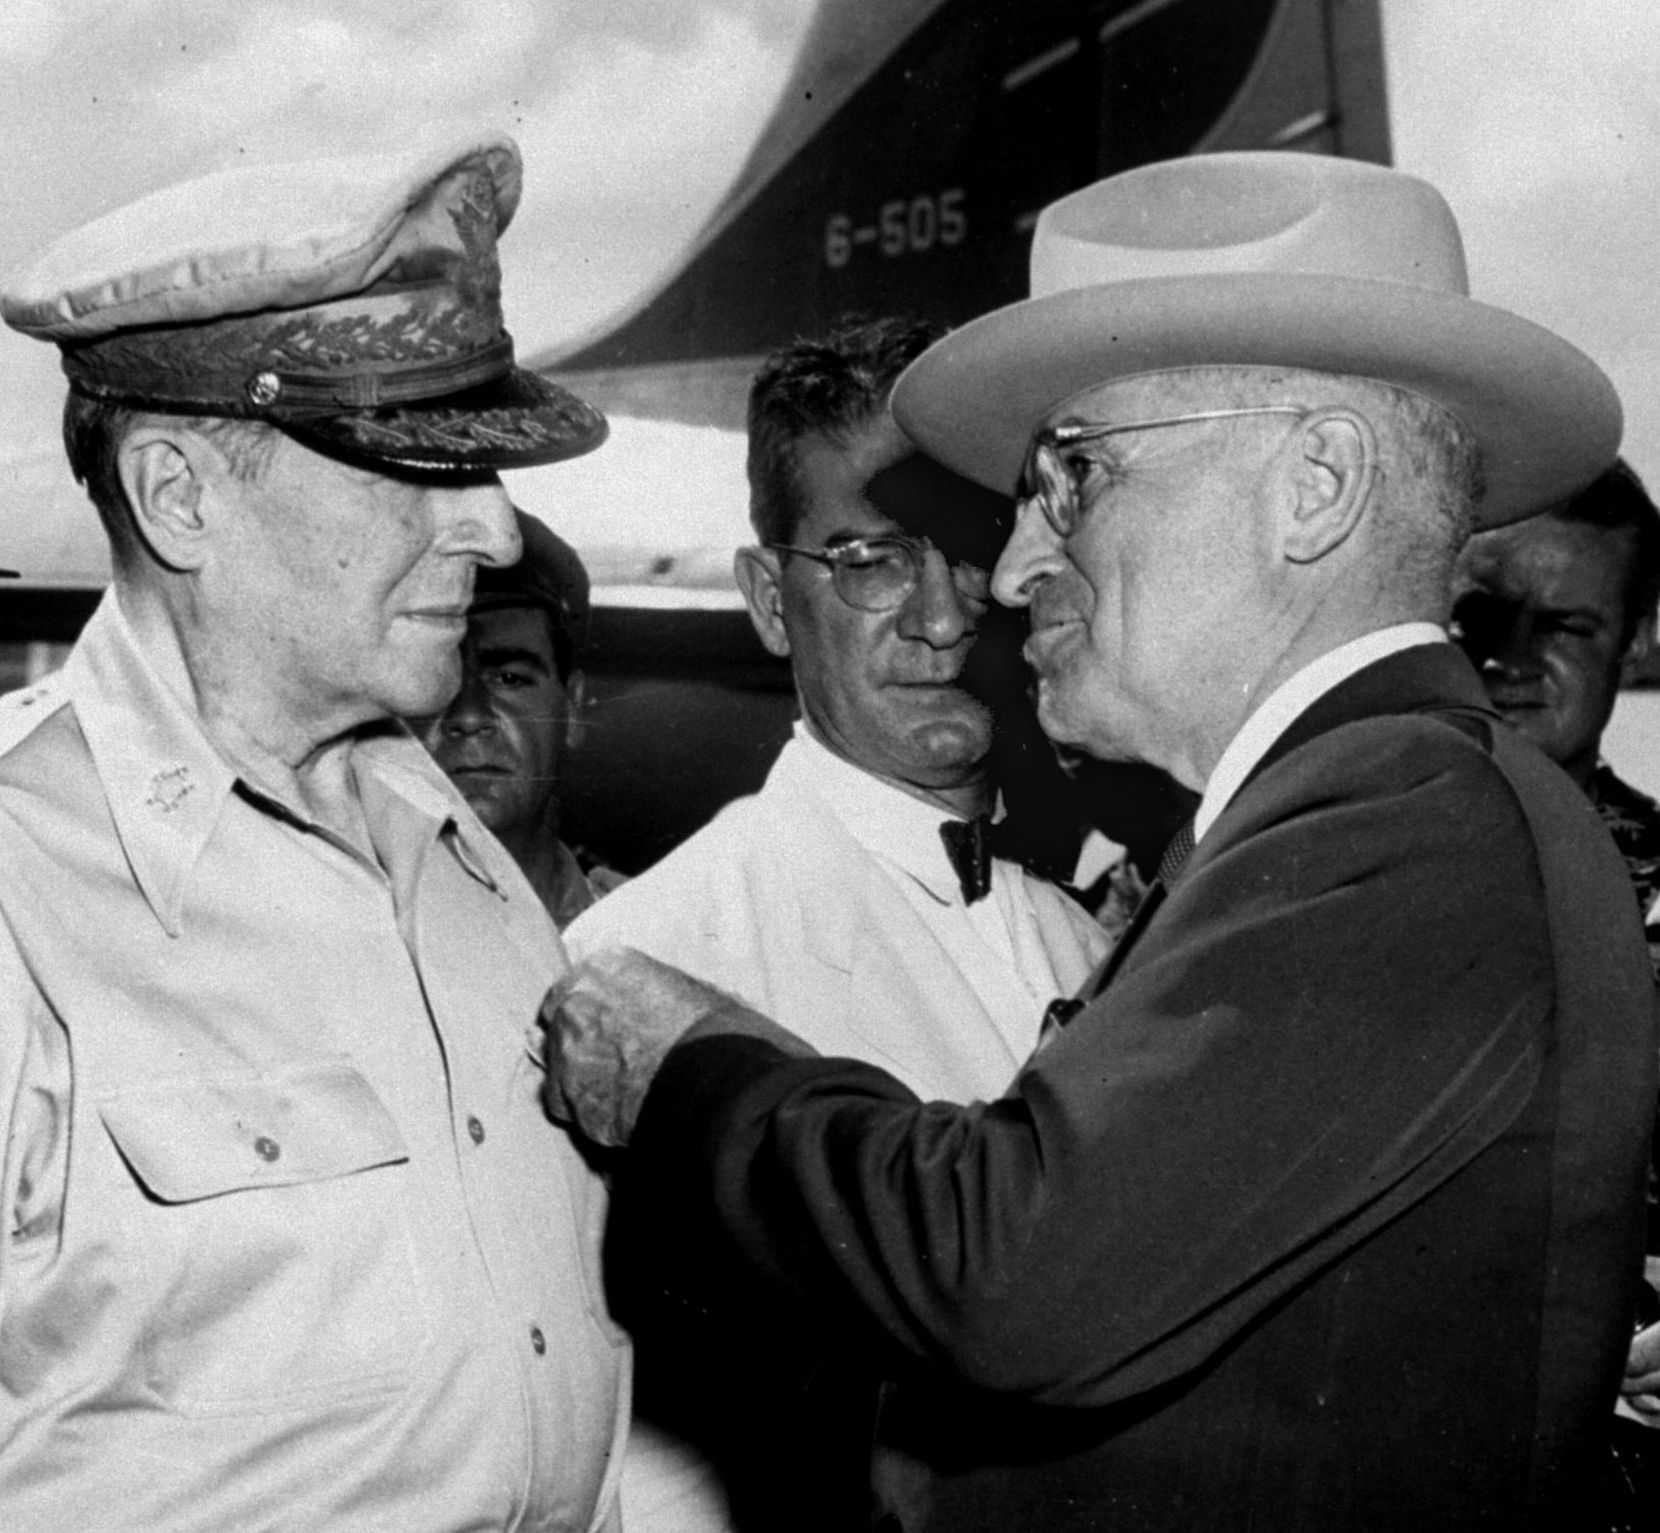 President Truman pins the Distinguished Service Medal on the shirt of Gen. Douglas MacArthur during a ceremony at the airstrip on Wake Island, on Oct. 14, 1950 while John J. Muccio, United States ambassador to Korea, watches.